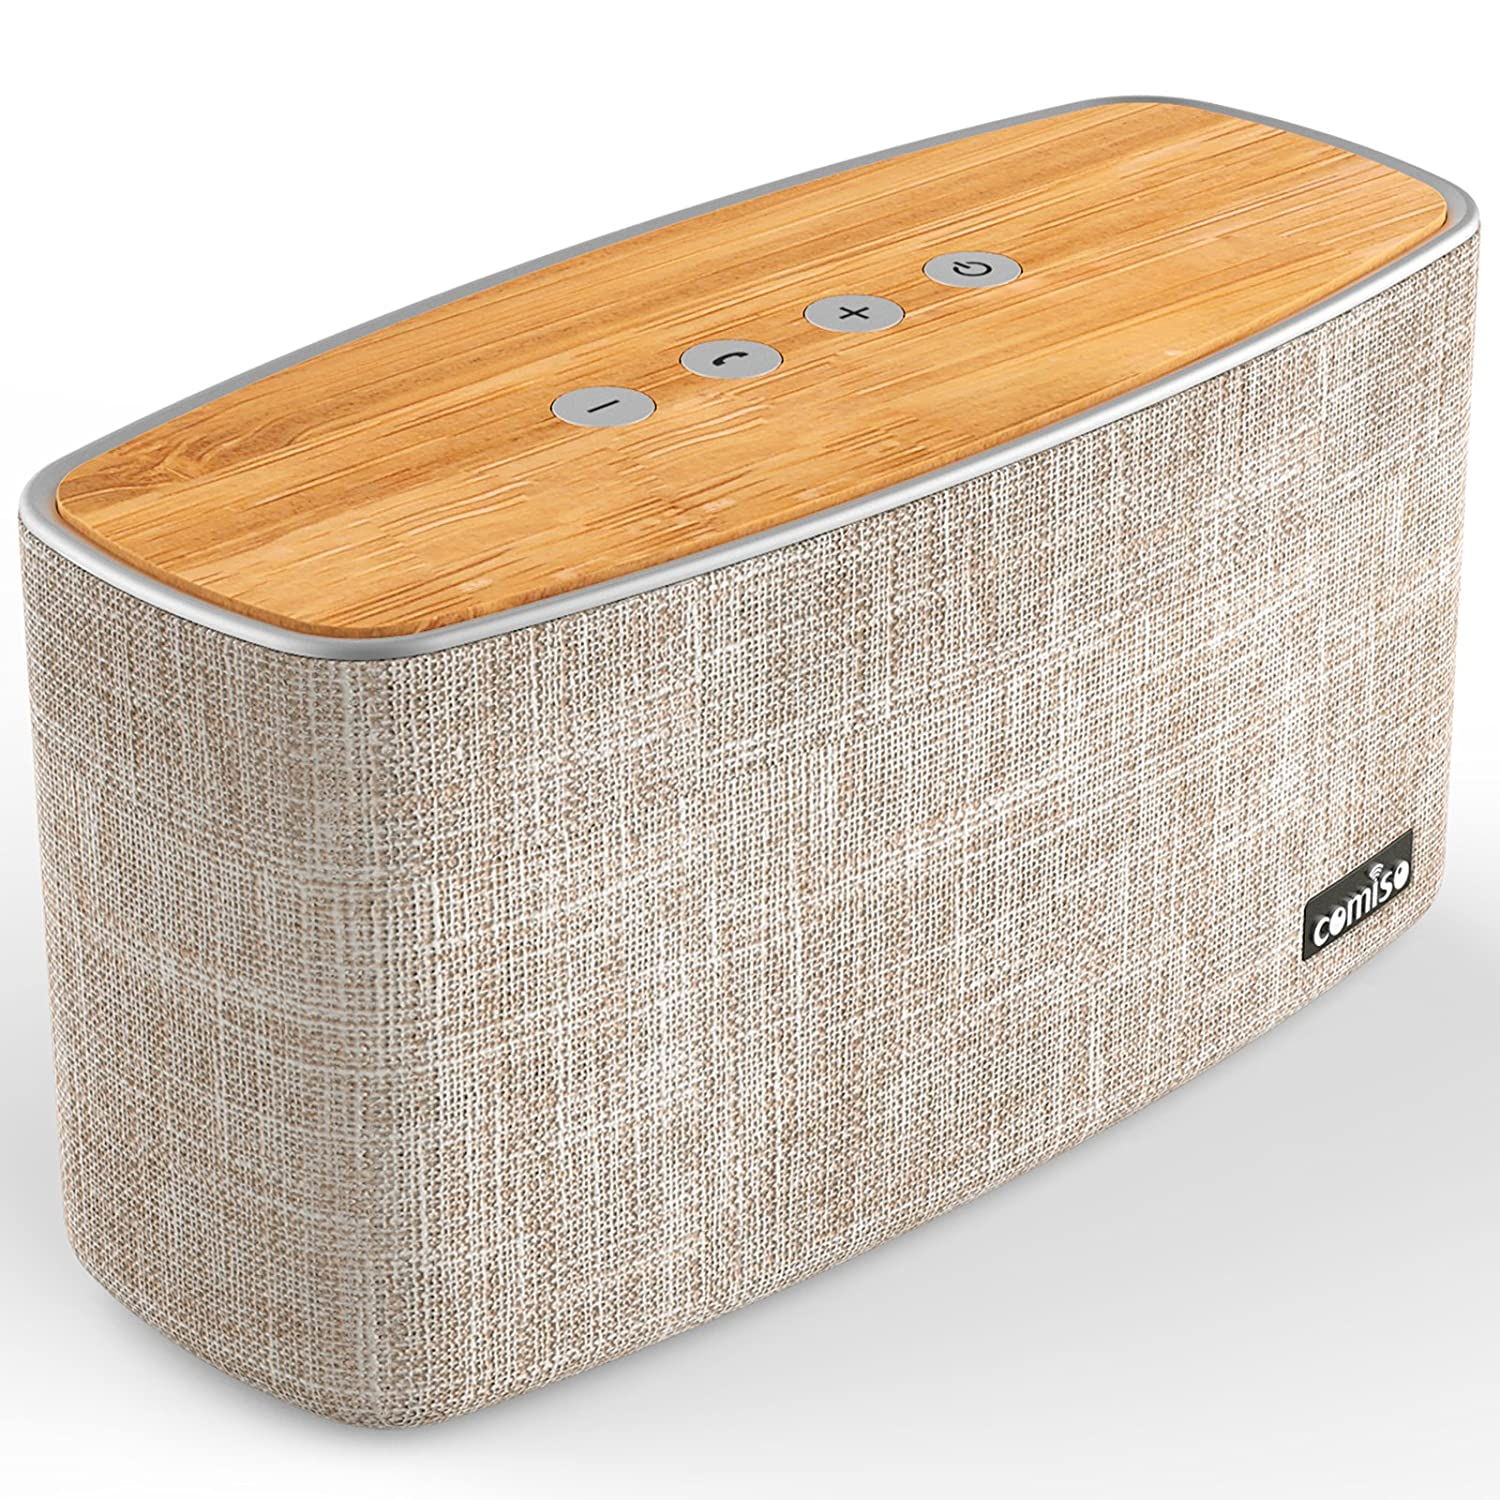 COMISO 30W Bluetooth Speakers with Super Bass, Bamboo Wood Home Speaker with Subwoofer, up to 20 Hours Playtime M20